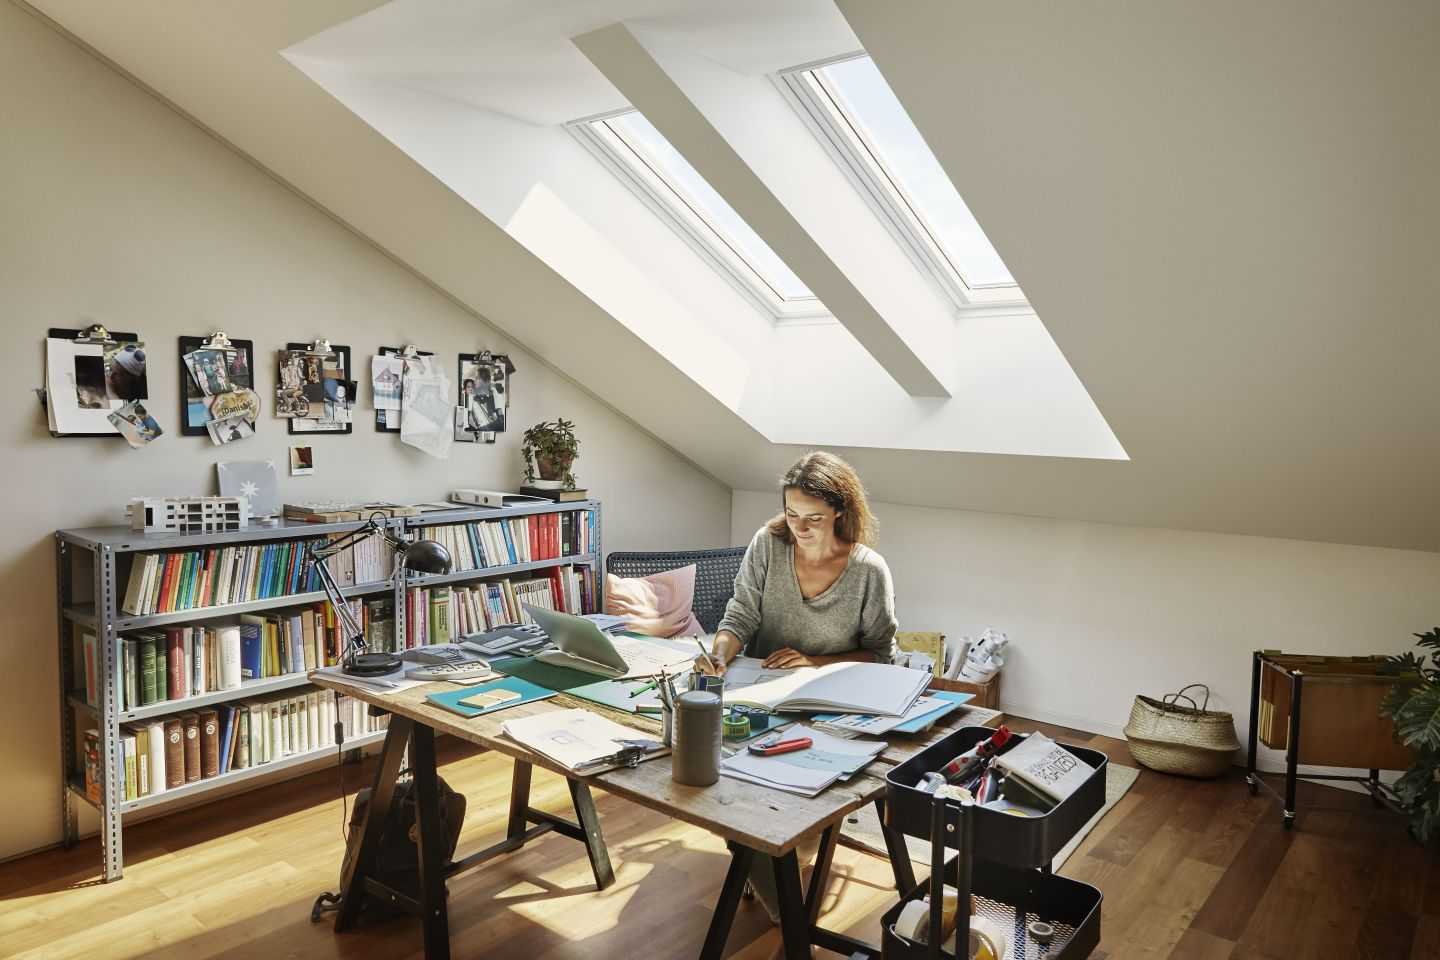 Get more inspiration: Build more daylight into your home renovation with VELUX roof windows